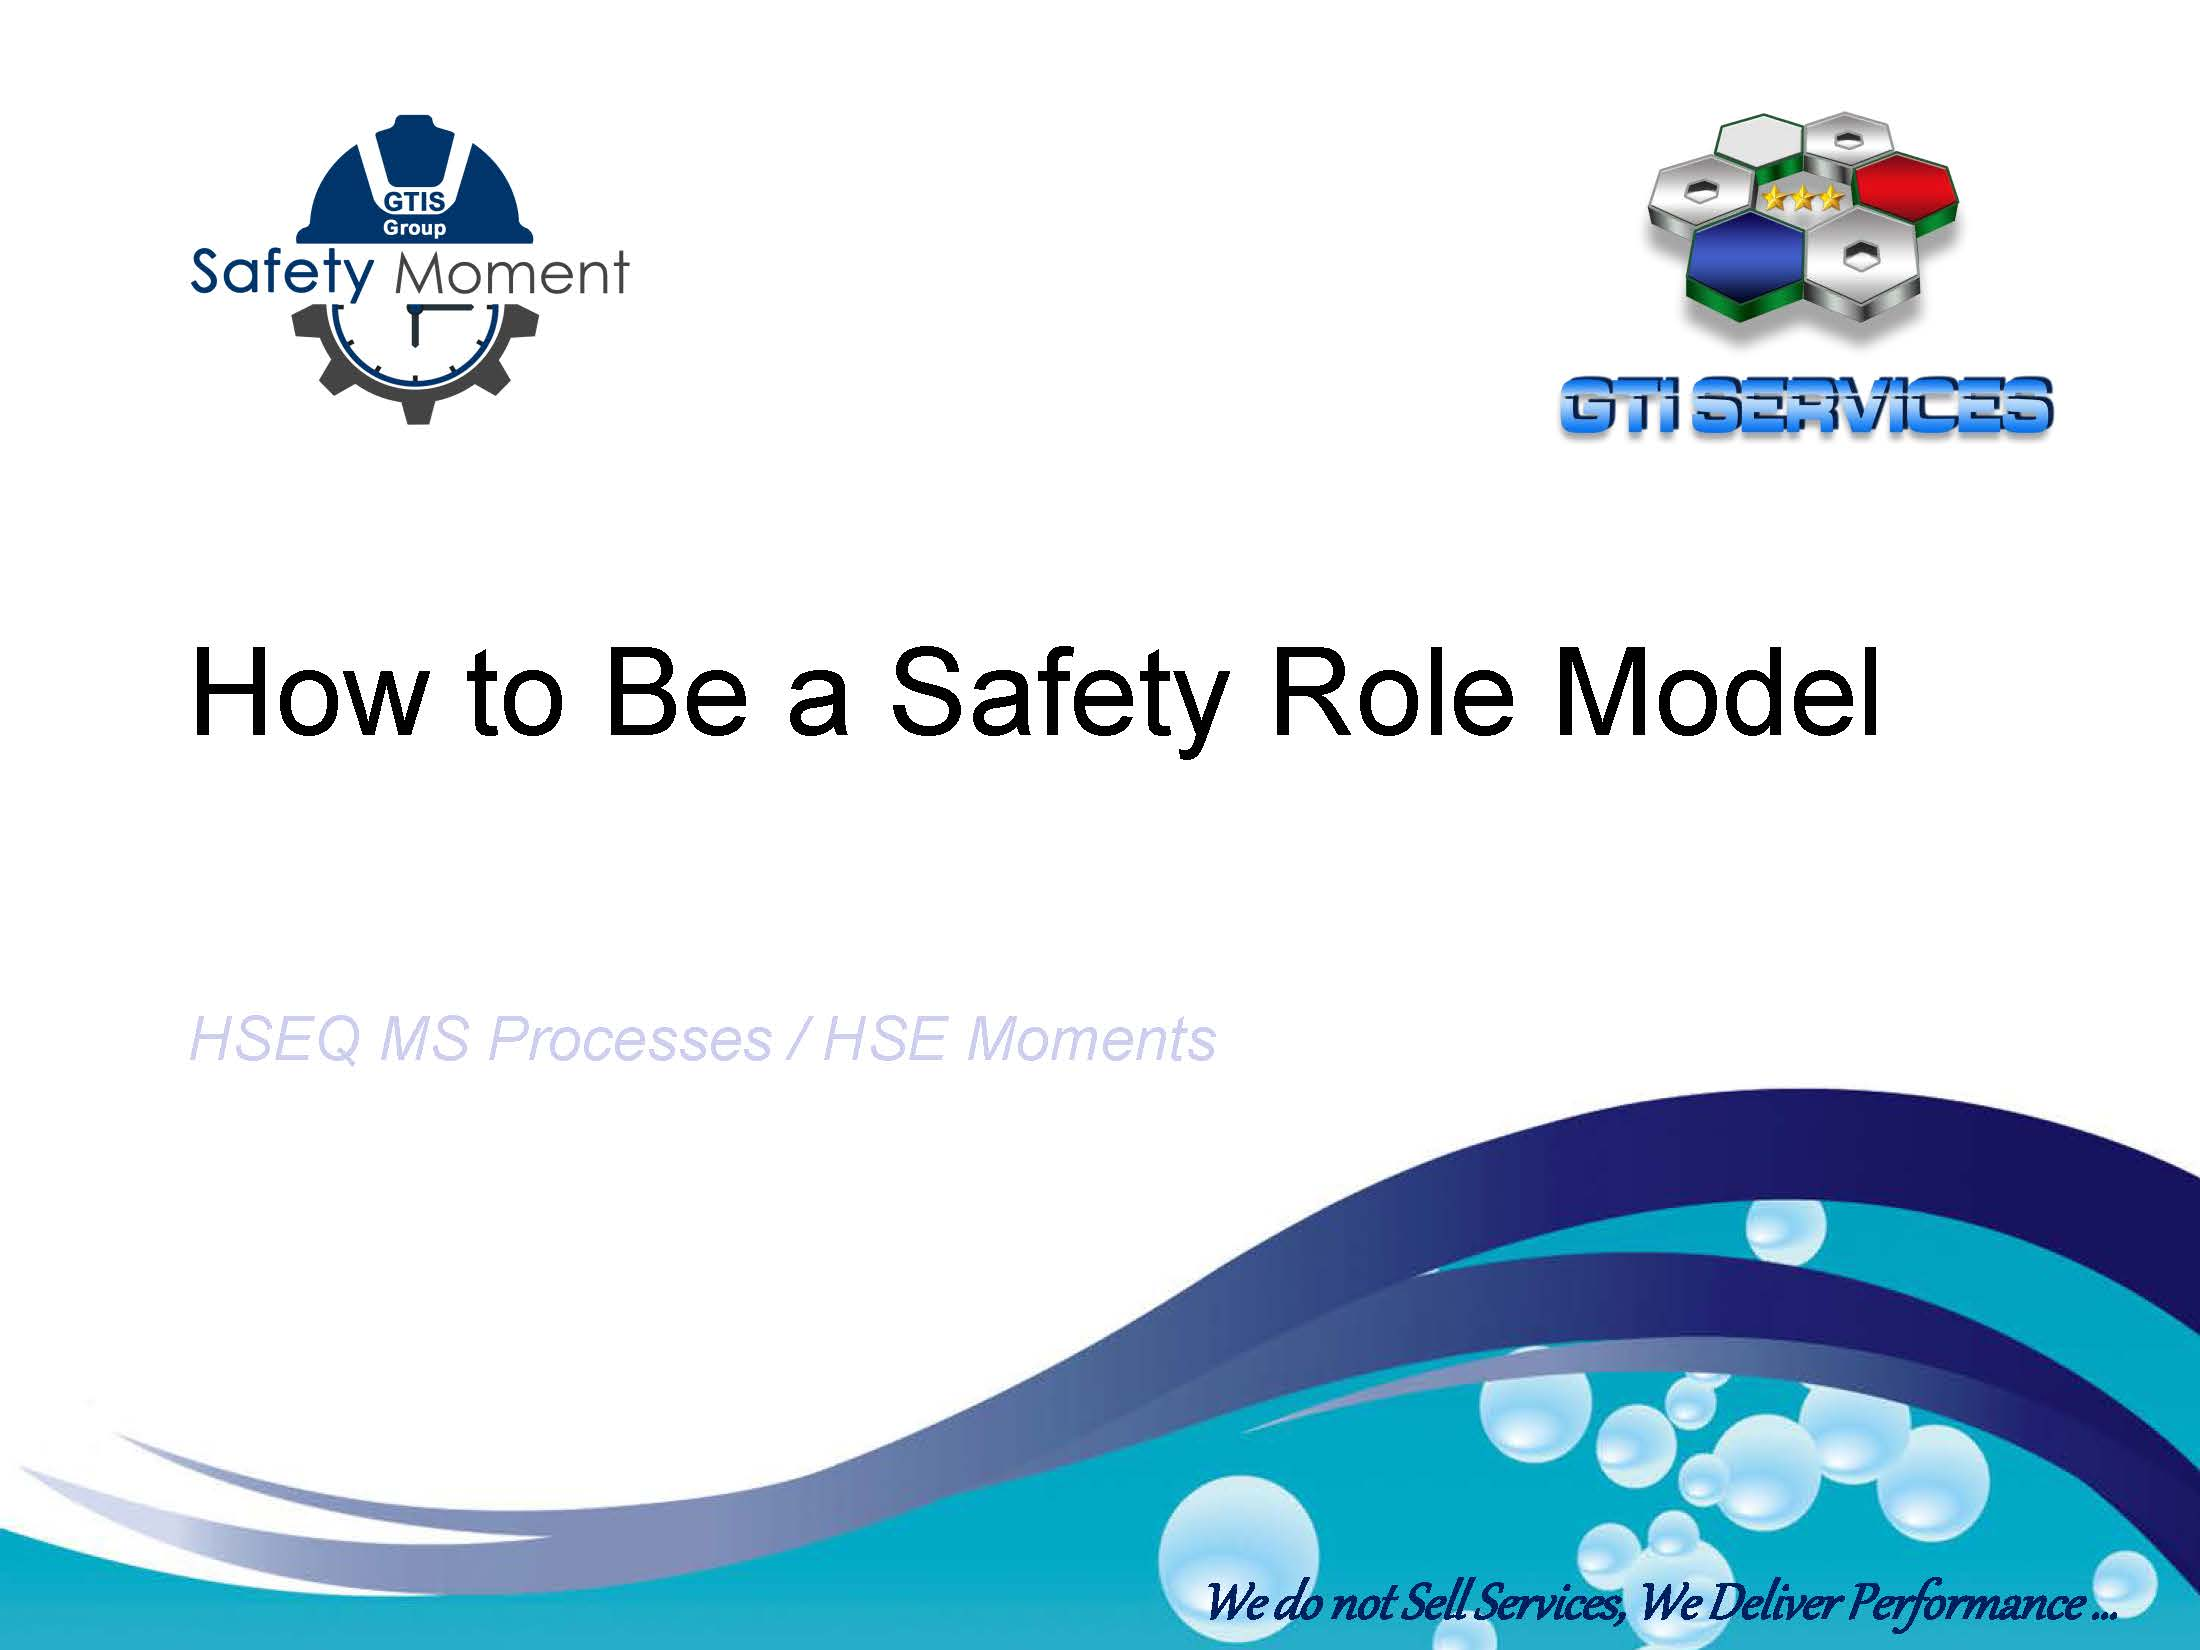 20191129 - Safety Moment - How to Be a Safety Role Model_Page_1